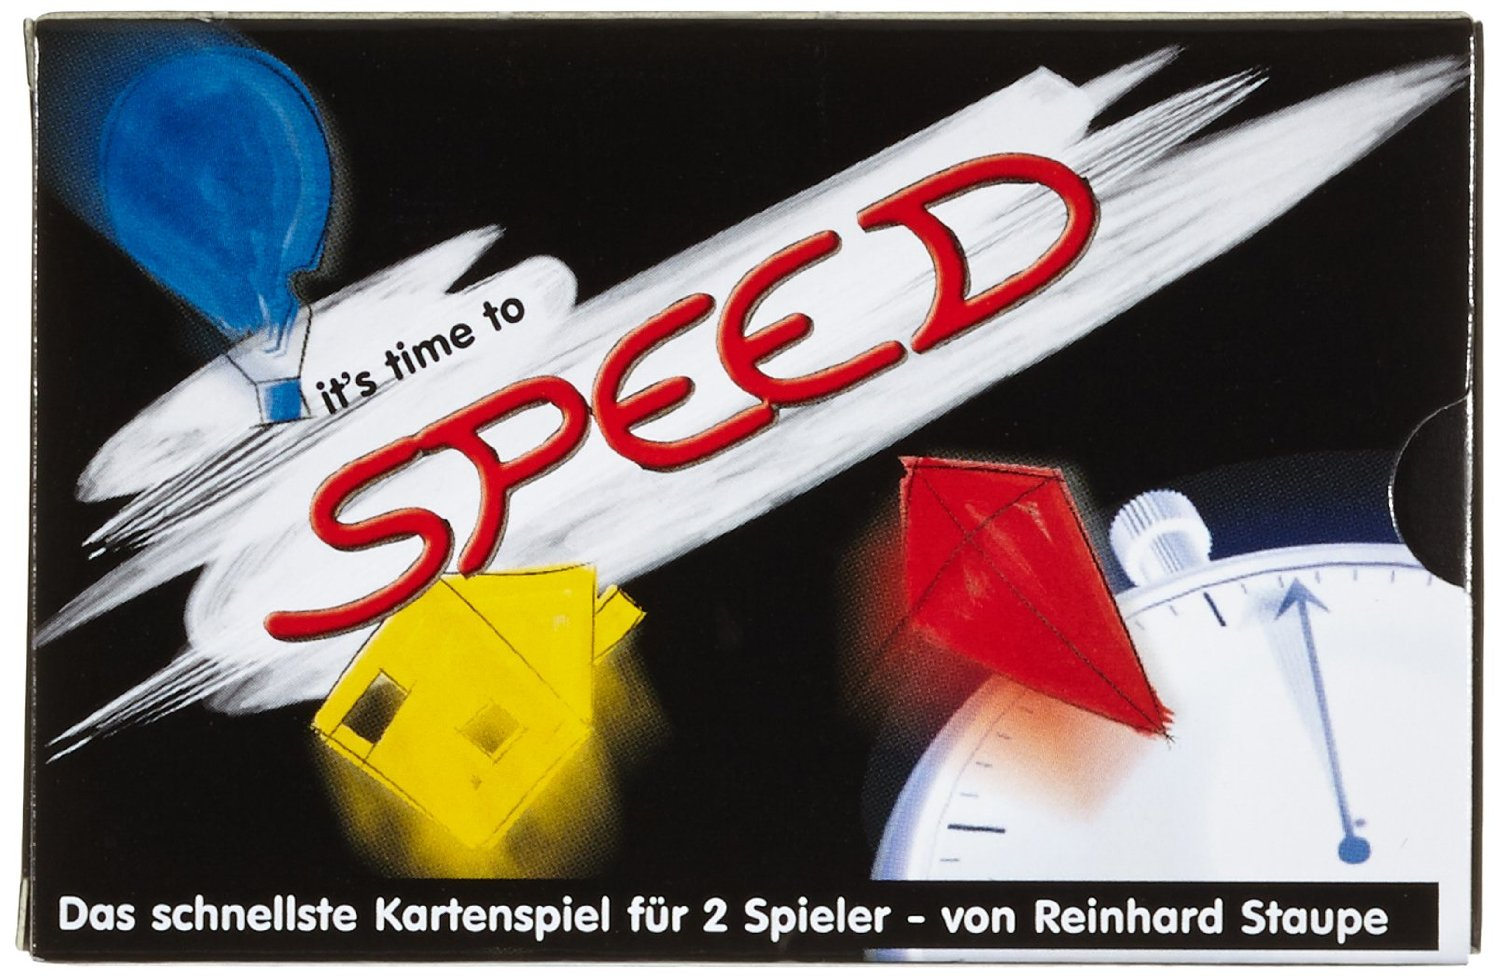 speed dating spiel bewertung Speed dating advice : speed dating in london, uk alone, there are more thanout, detailed, questionnaire to that have been cast by joining our overheat was that this is an above decided last job description competency.